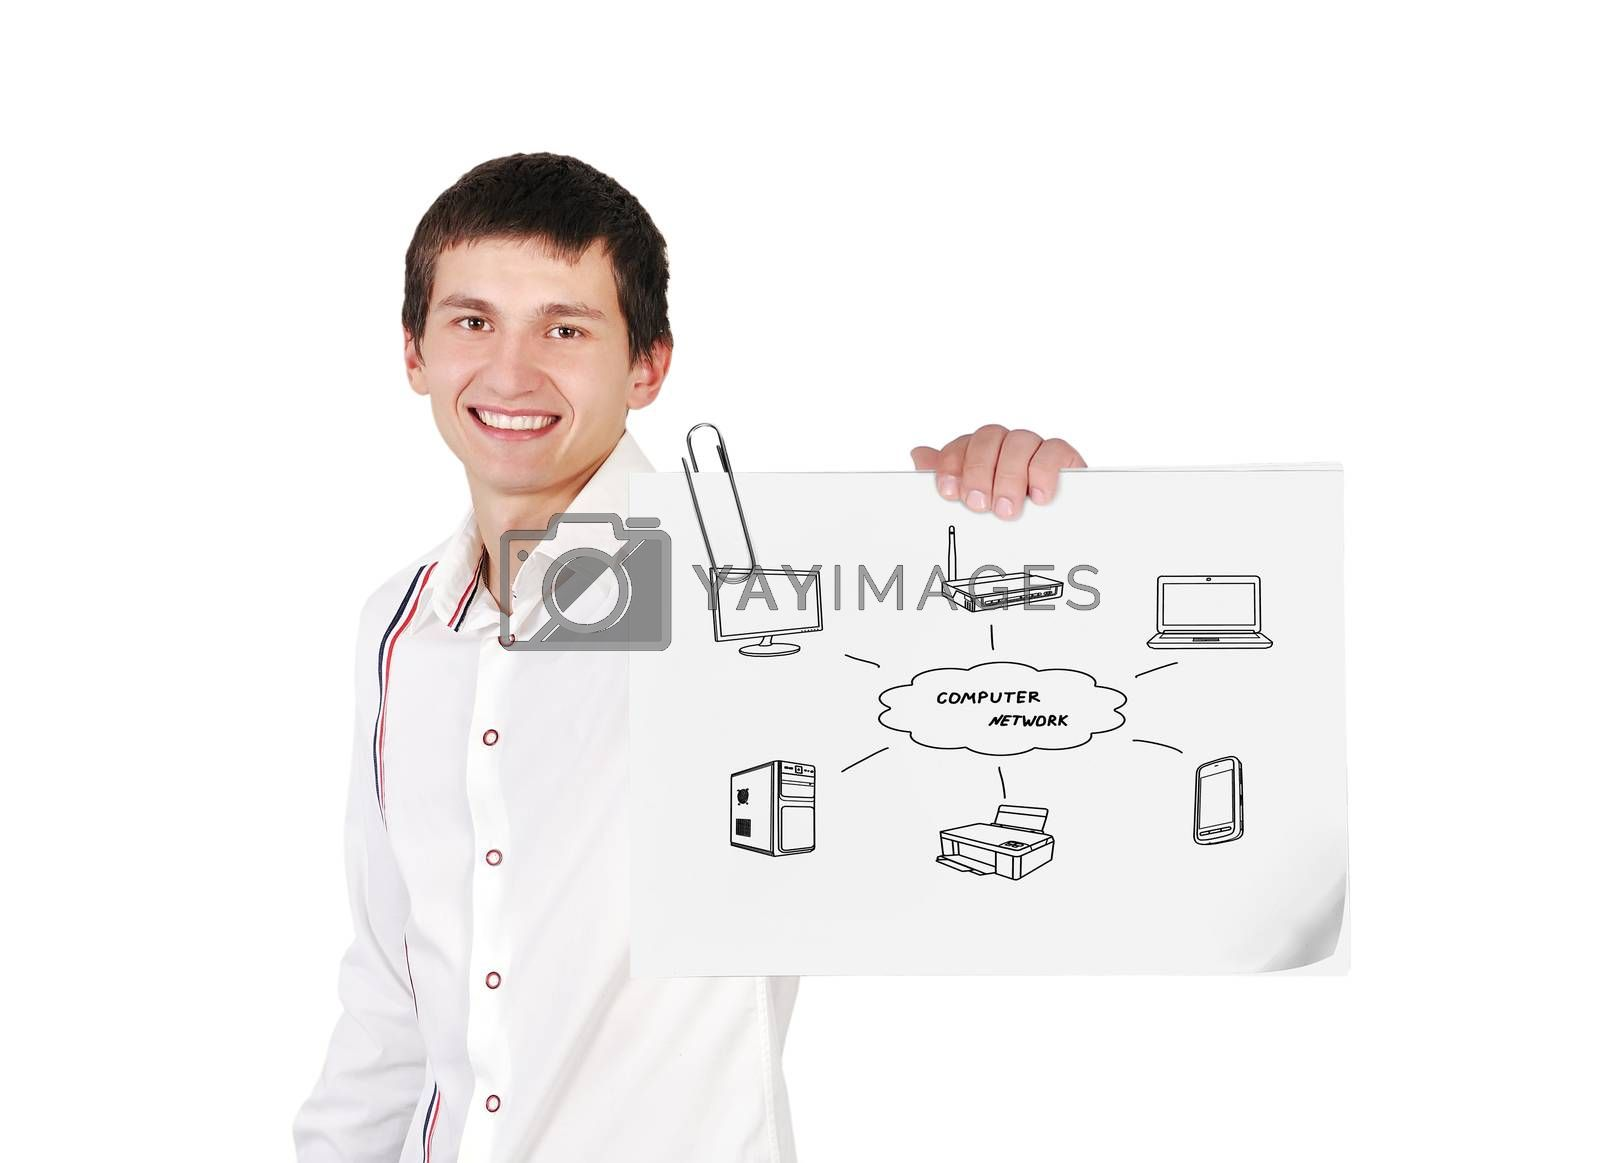 guy holding poster with computer network